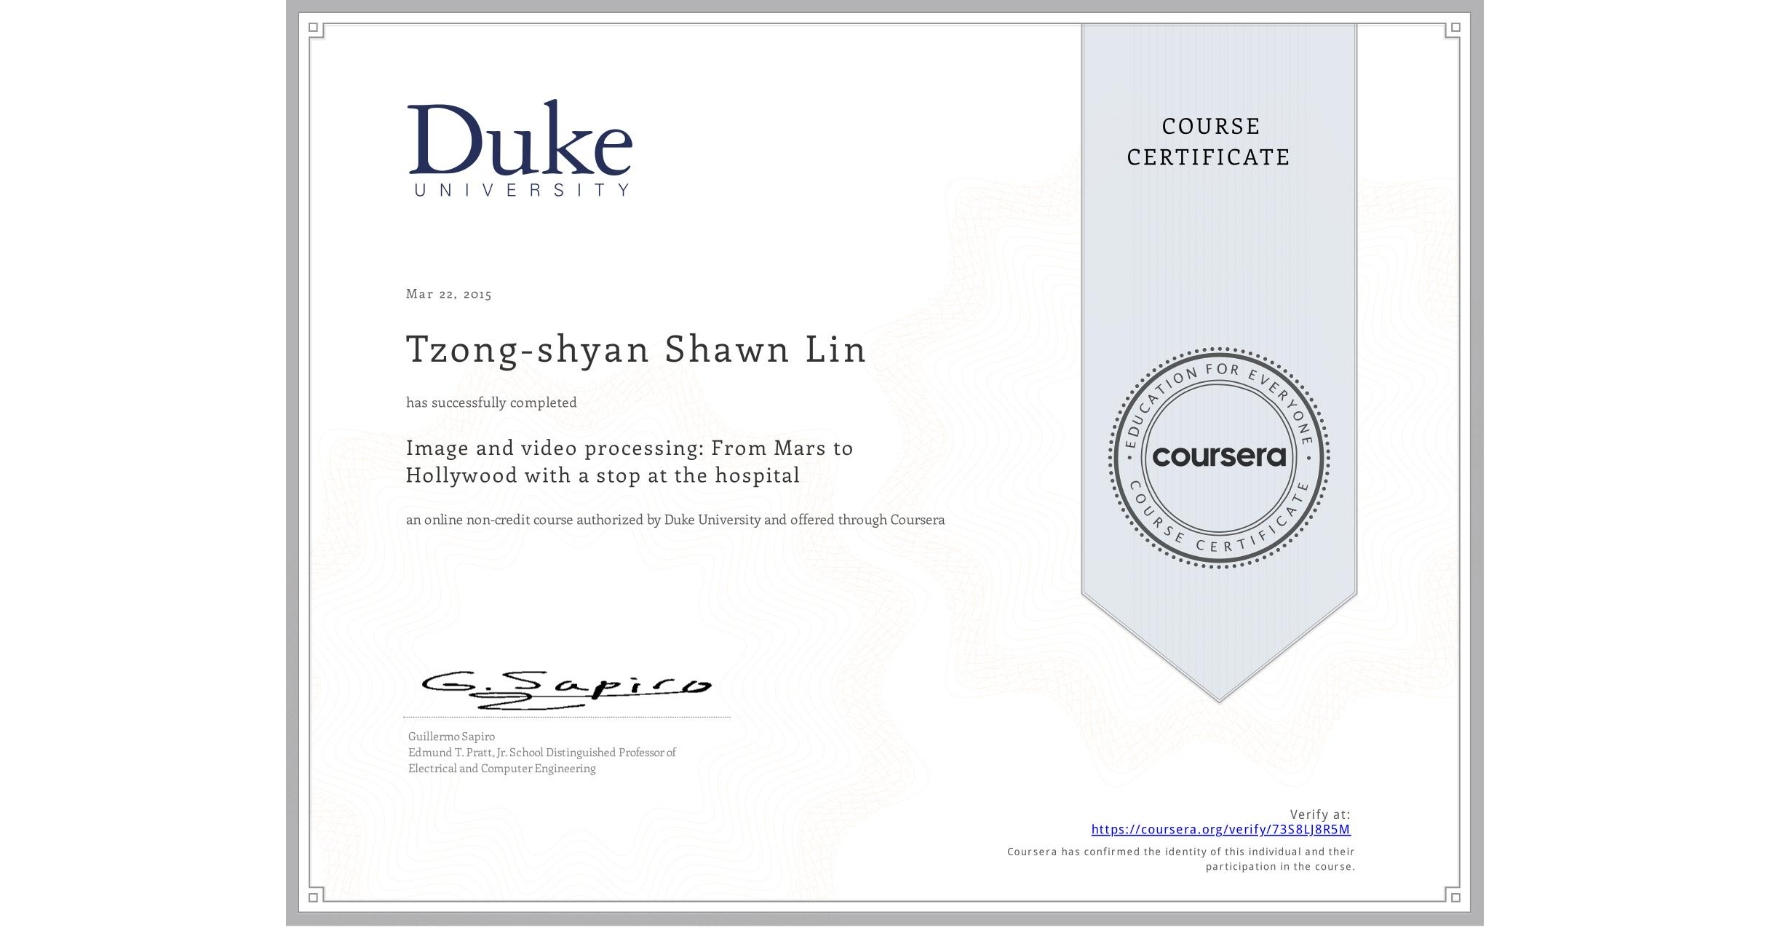 View certificate for Tzong-shyan Shawn Lin, Image and video processing: From Mars to Hollywood with a stop at the hospital, an online non-credit course authorized by Duke University and offered through Coursera